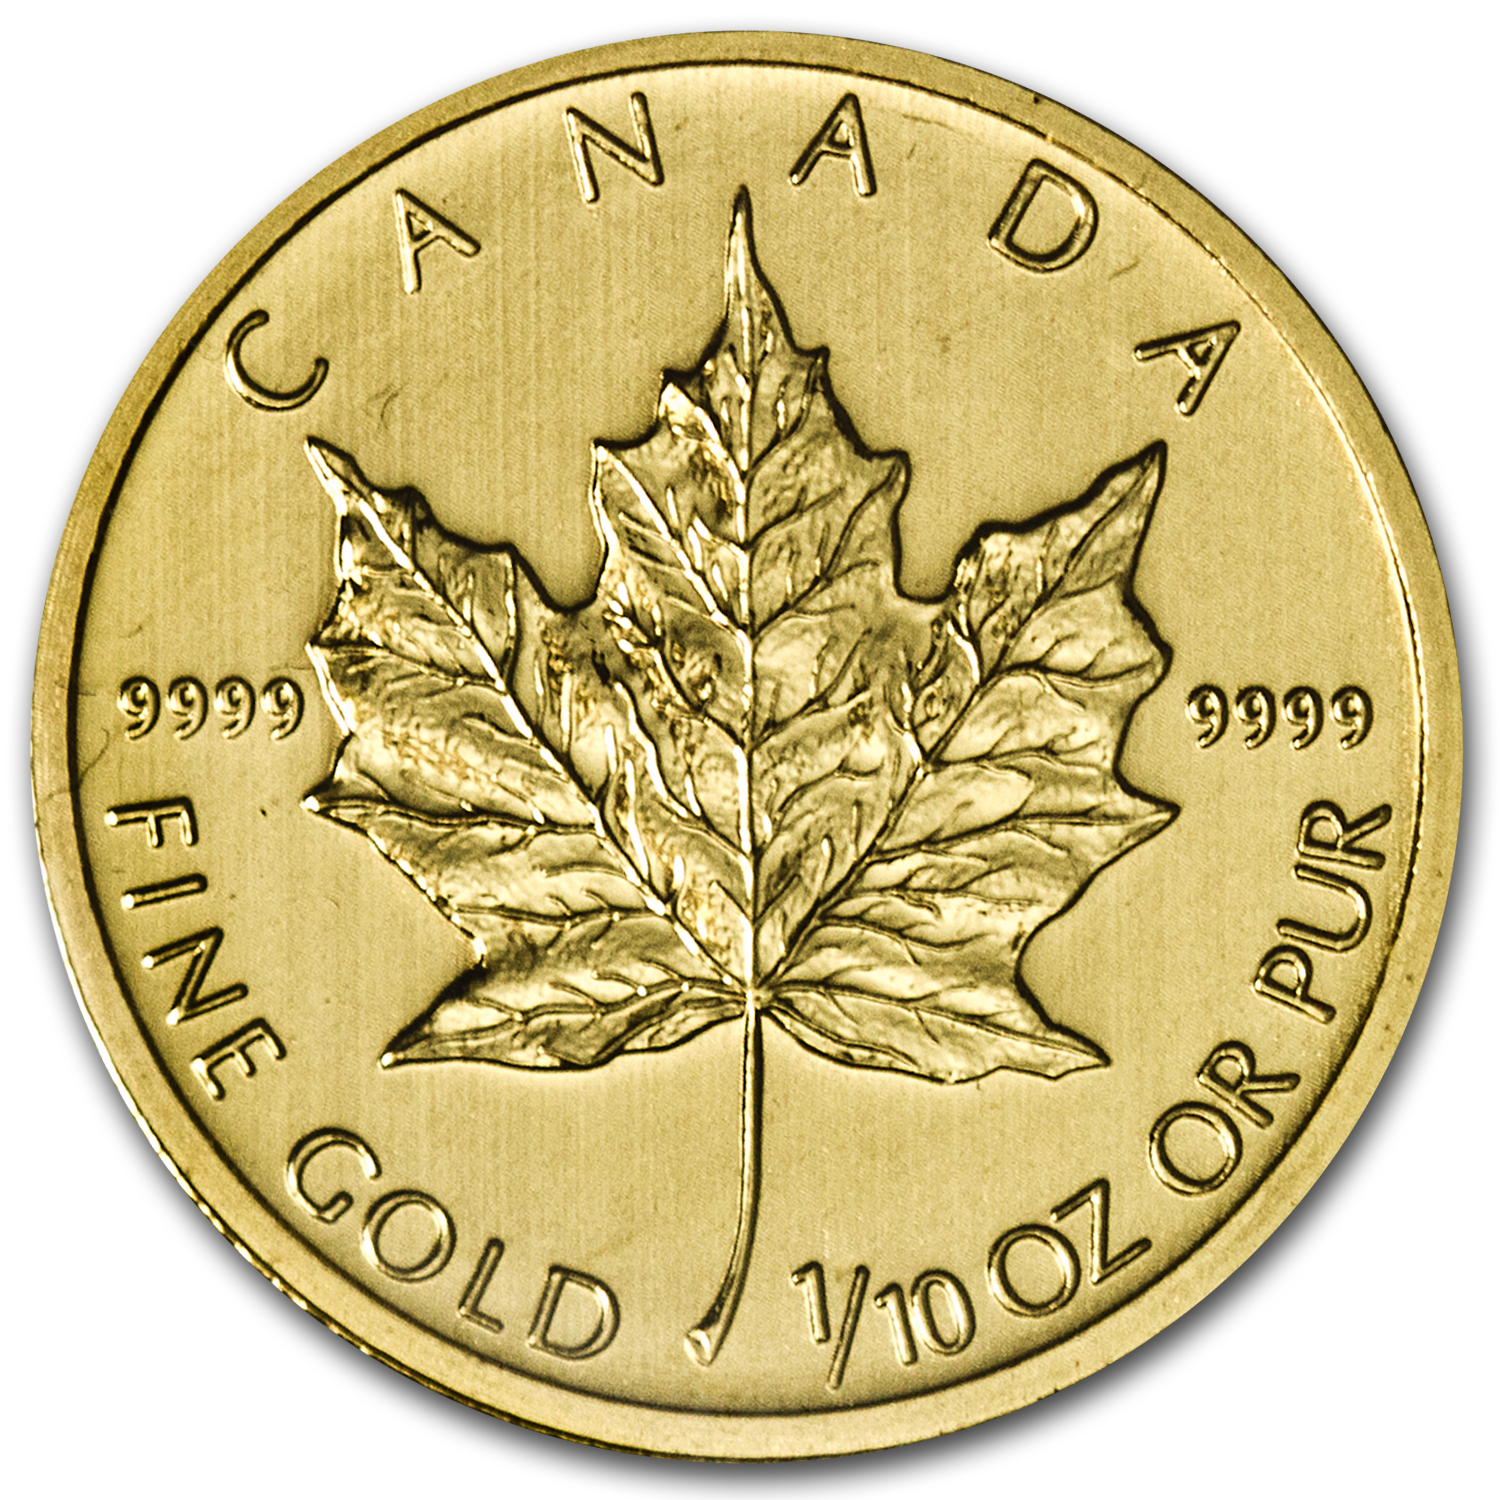 2013 1/10 oz Gold Canadian Maple Leaf